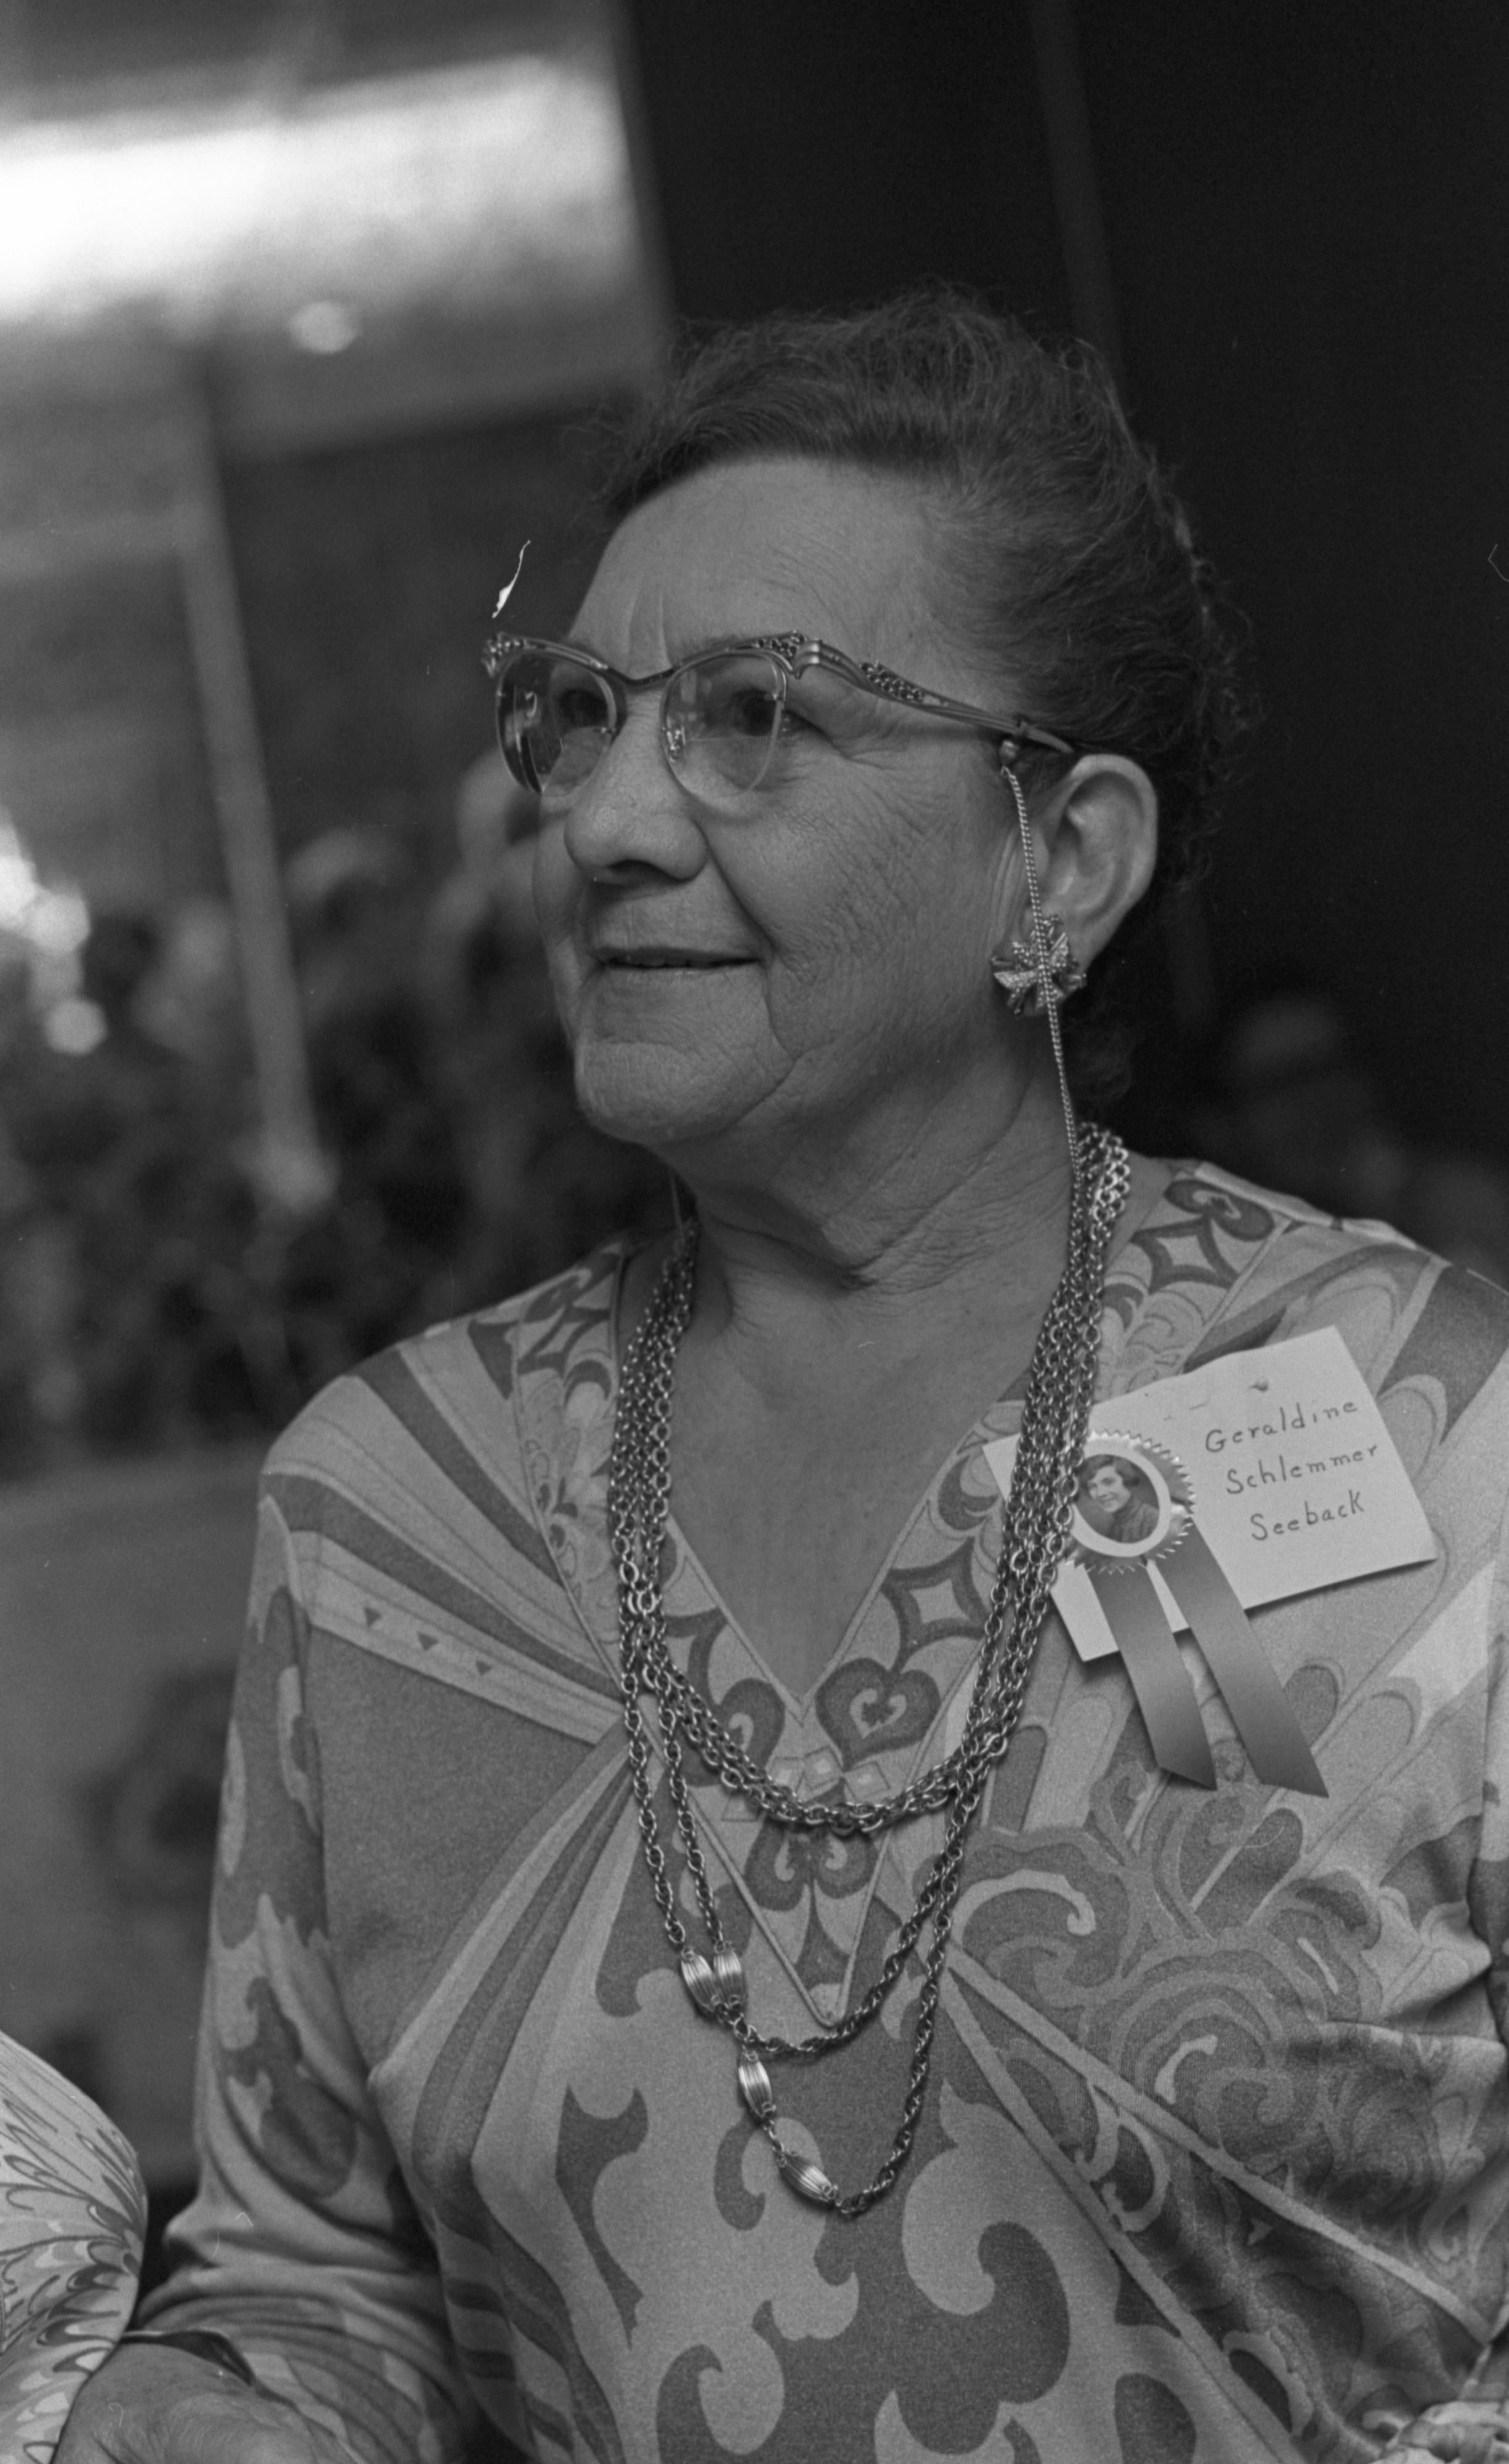 Geraldine Seeback, Co-Coordinator Of The Ann Arbor High School Class of 1927 - 50 Year Reunion, June 1977 image